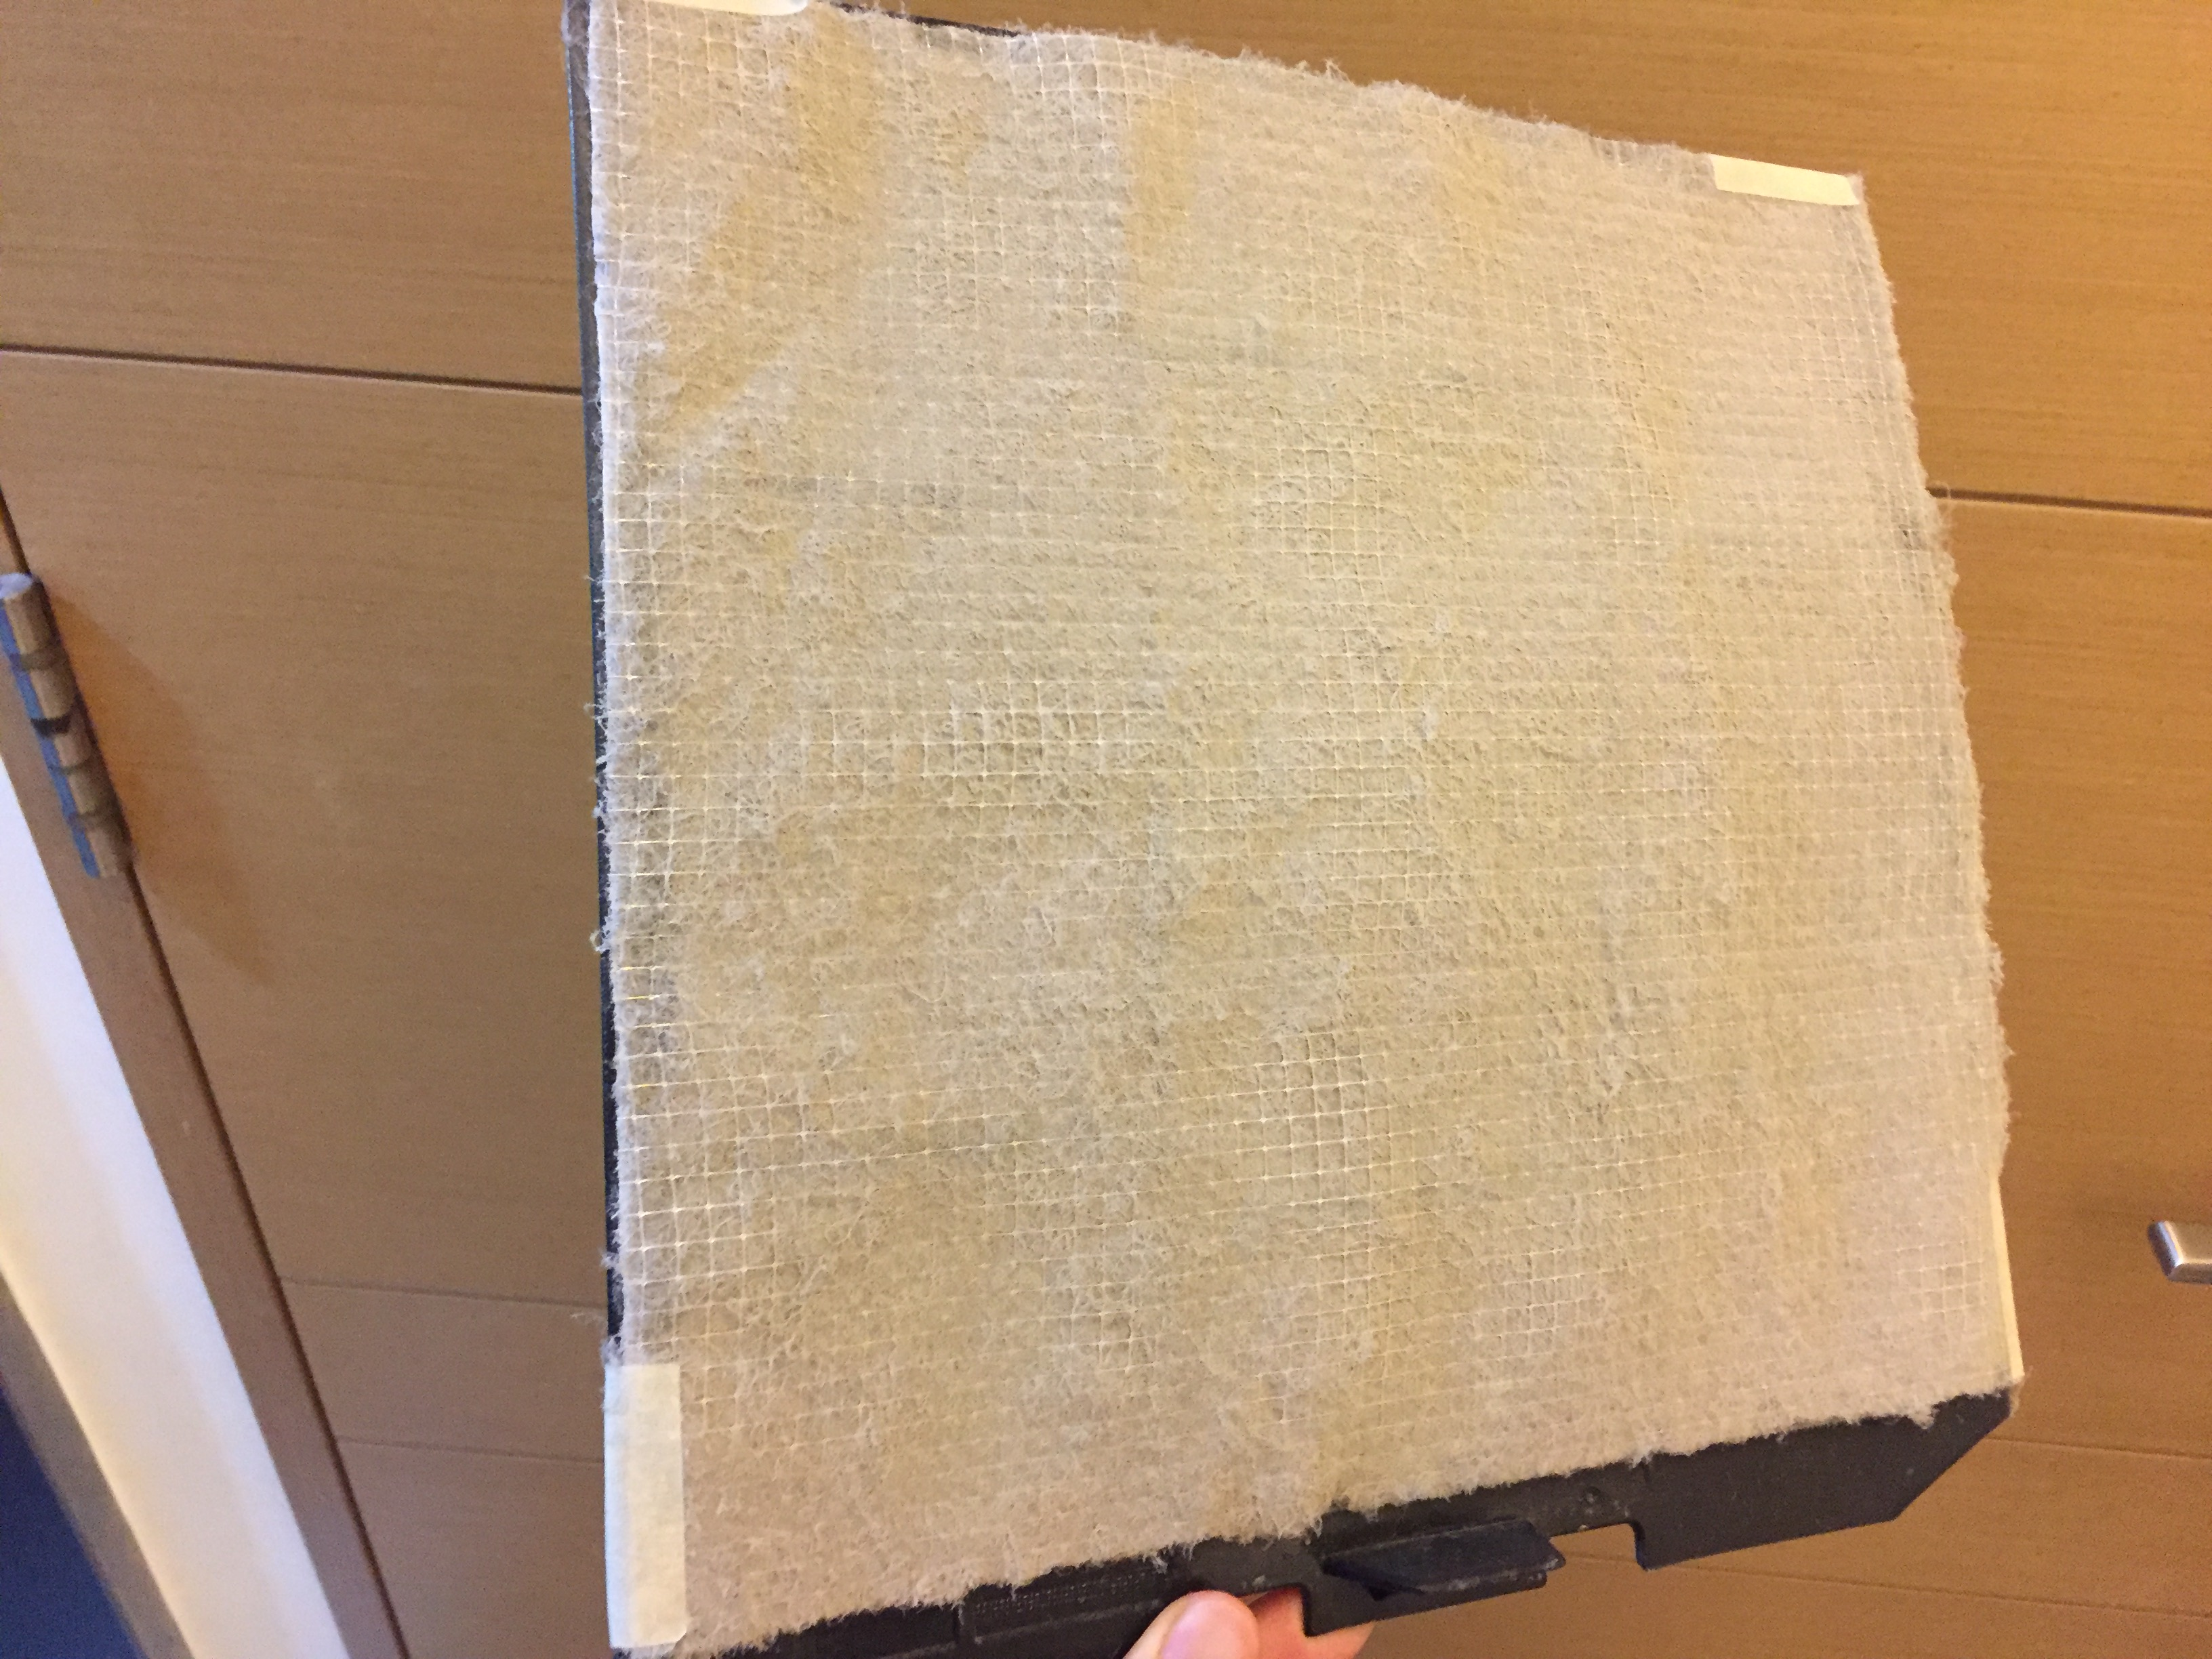 dust build up on air conditioner filter